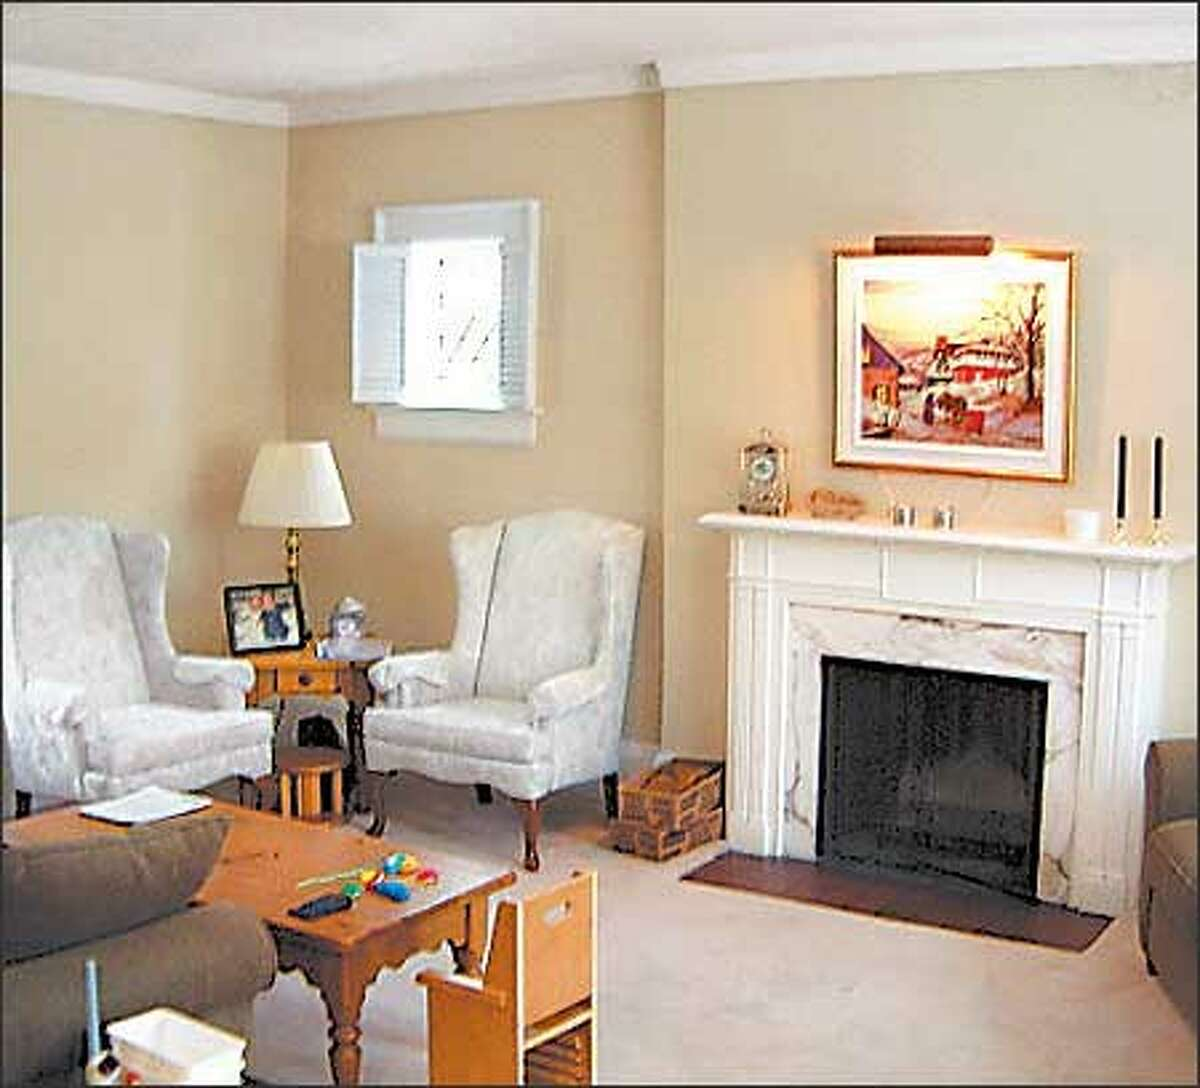 Before: Previously there was no focal point in the living room. We started by fixing the fireplace, then added color to the walls.